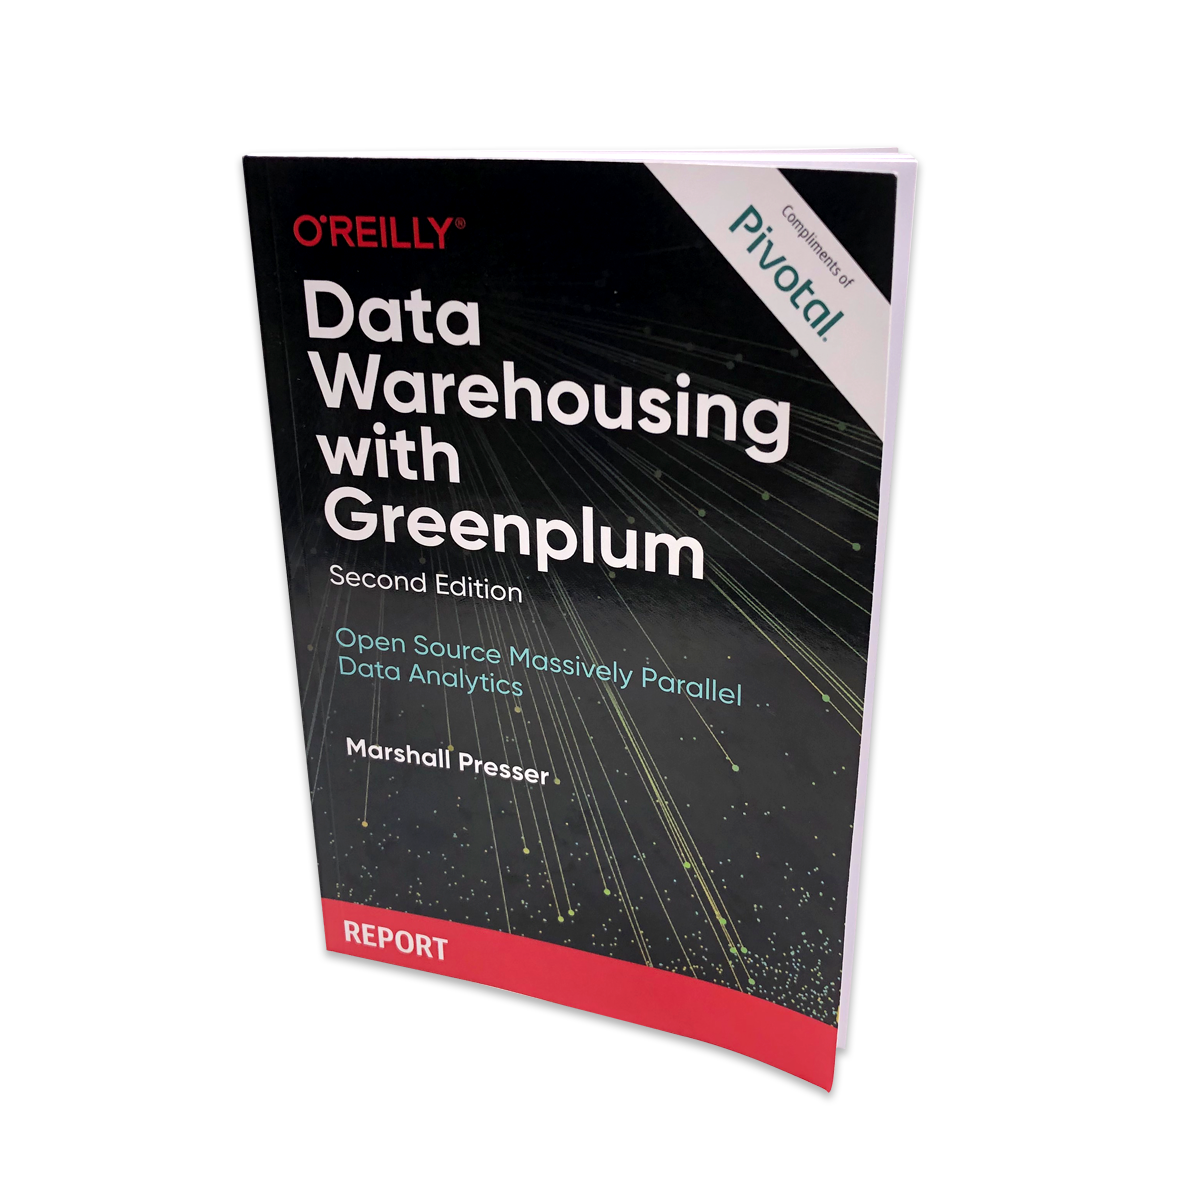 Data Warehousing With Greenplum Book 2nd Edition